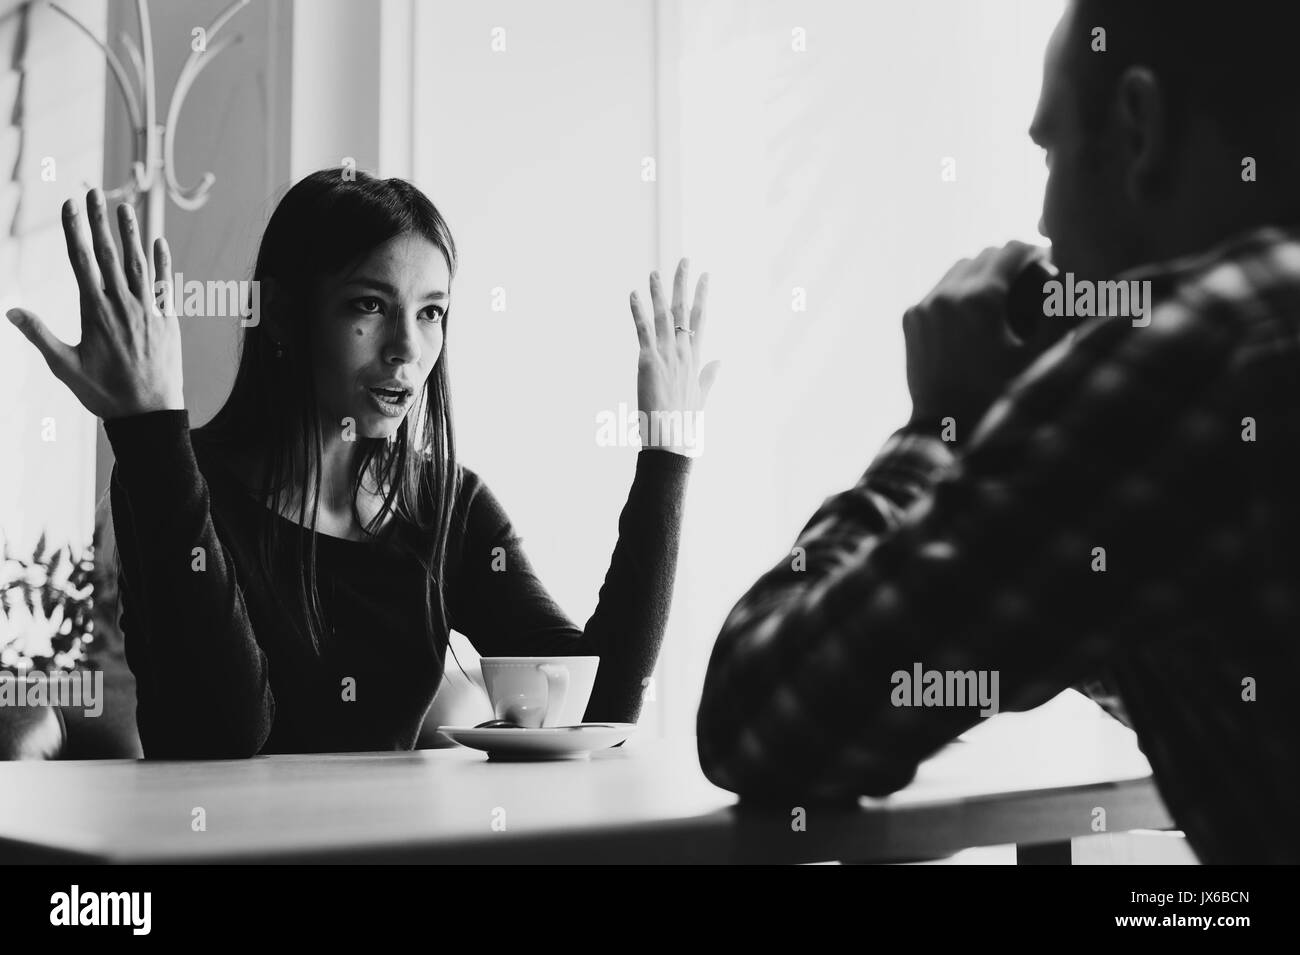 Young couple arguing in a cafe. Relationship problems. - Stock Image